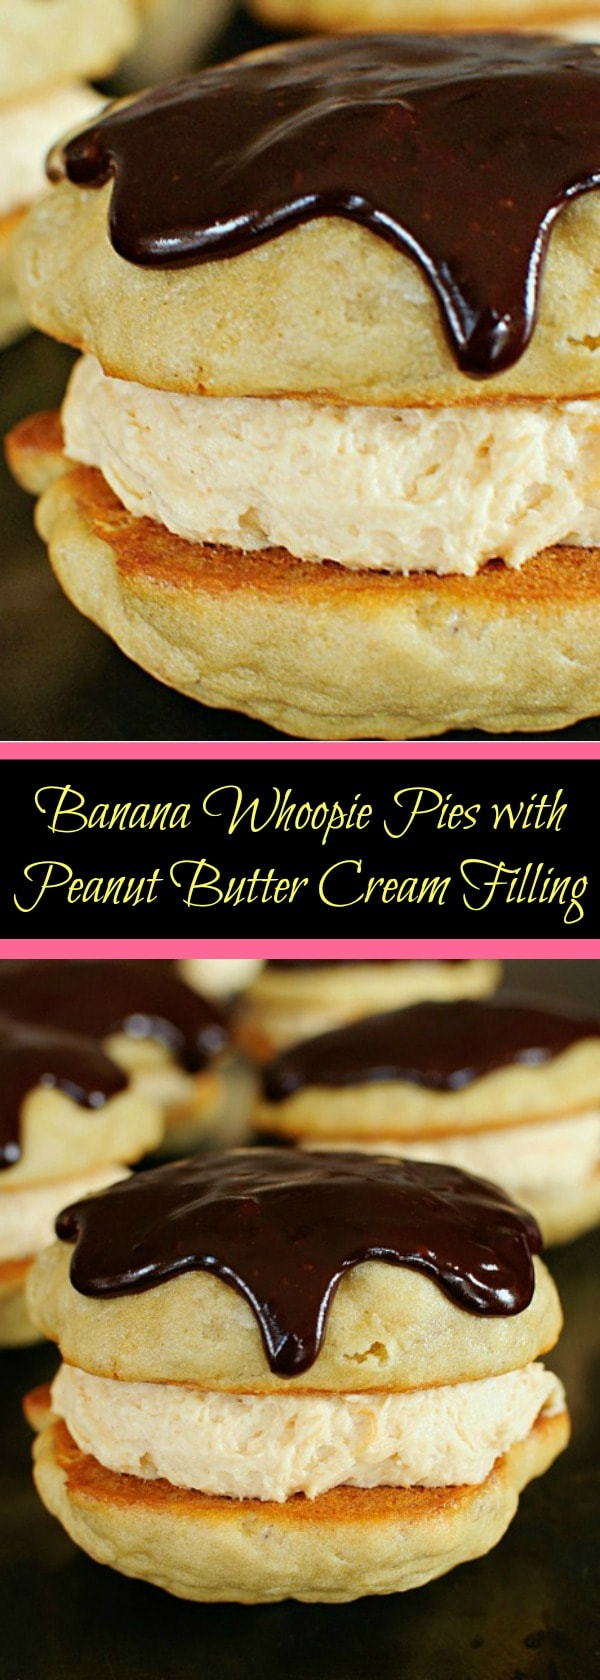 Banana Whoopie Pies with Peanut Butter Cream Filling